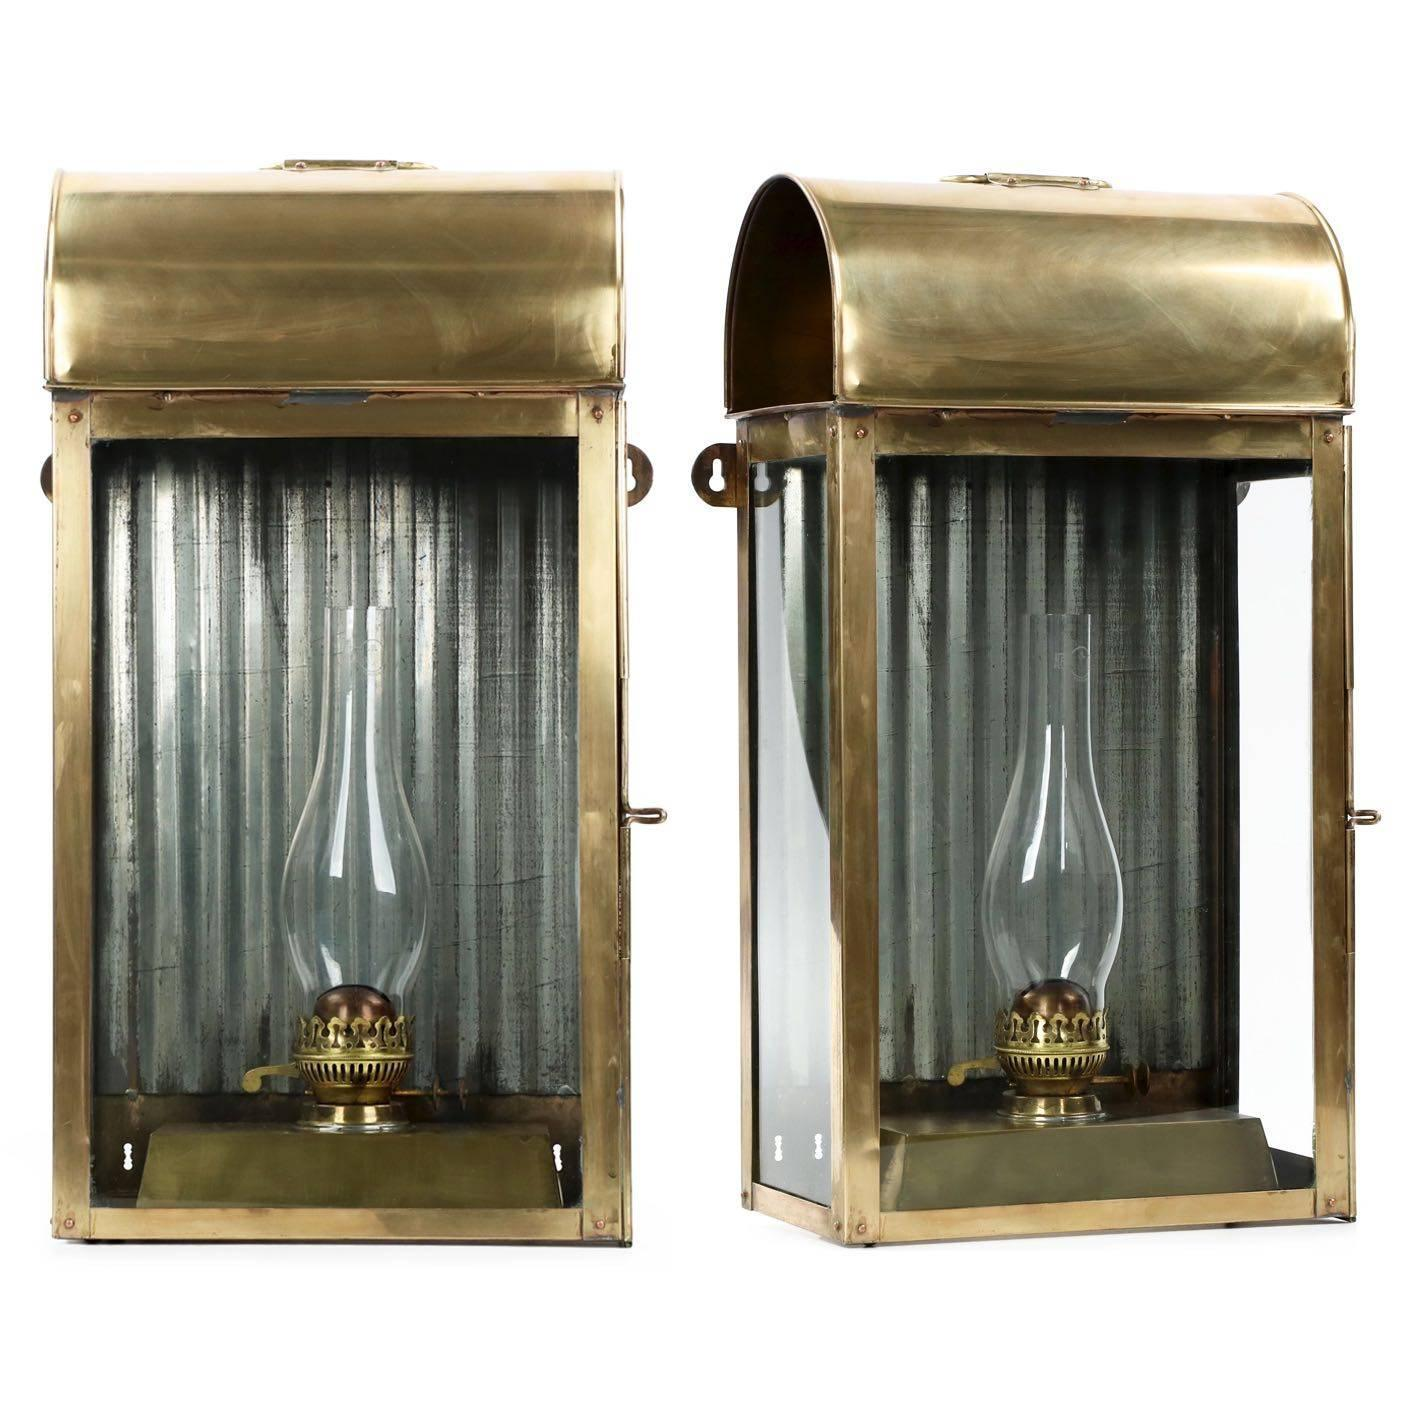 Pair of English Domed Brass Hanging Wall Oil Lamp Lanterns, 19th Century at 1stdibs